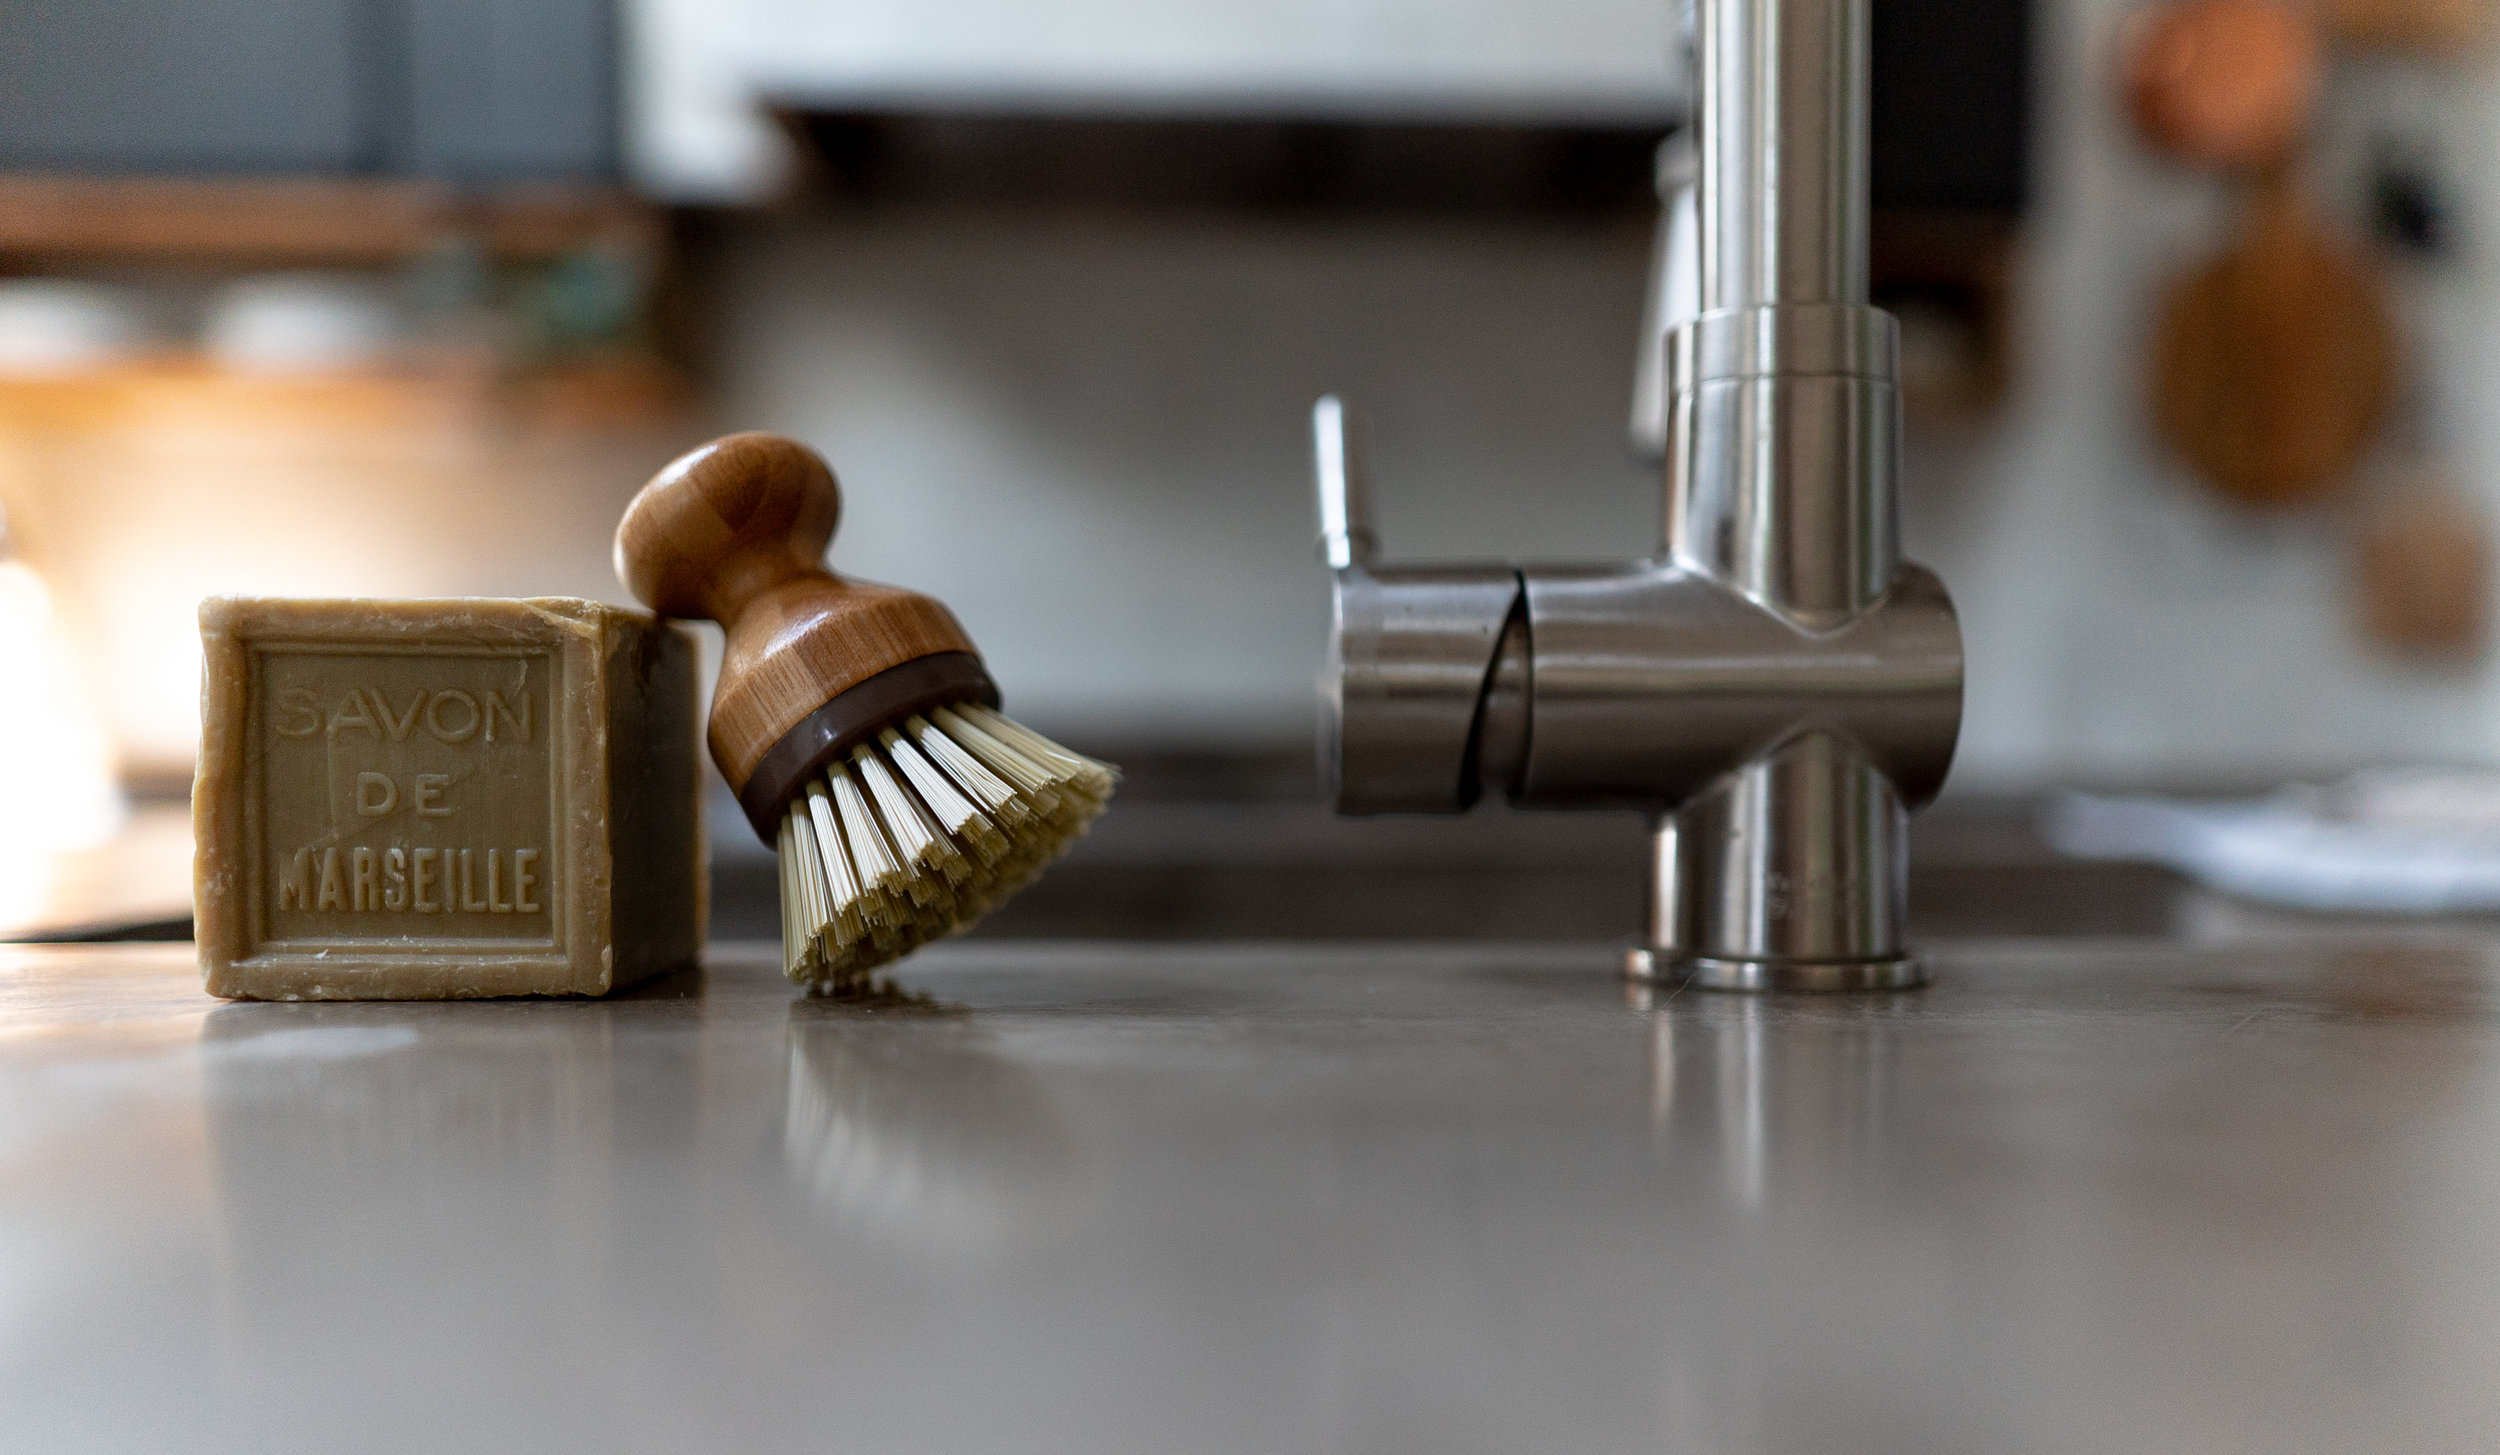 close up of soap and brush-00099.jpg